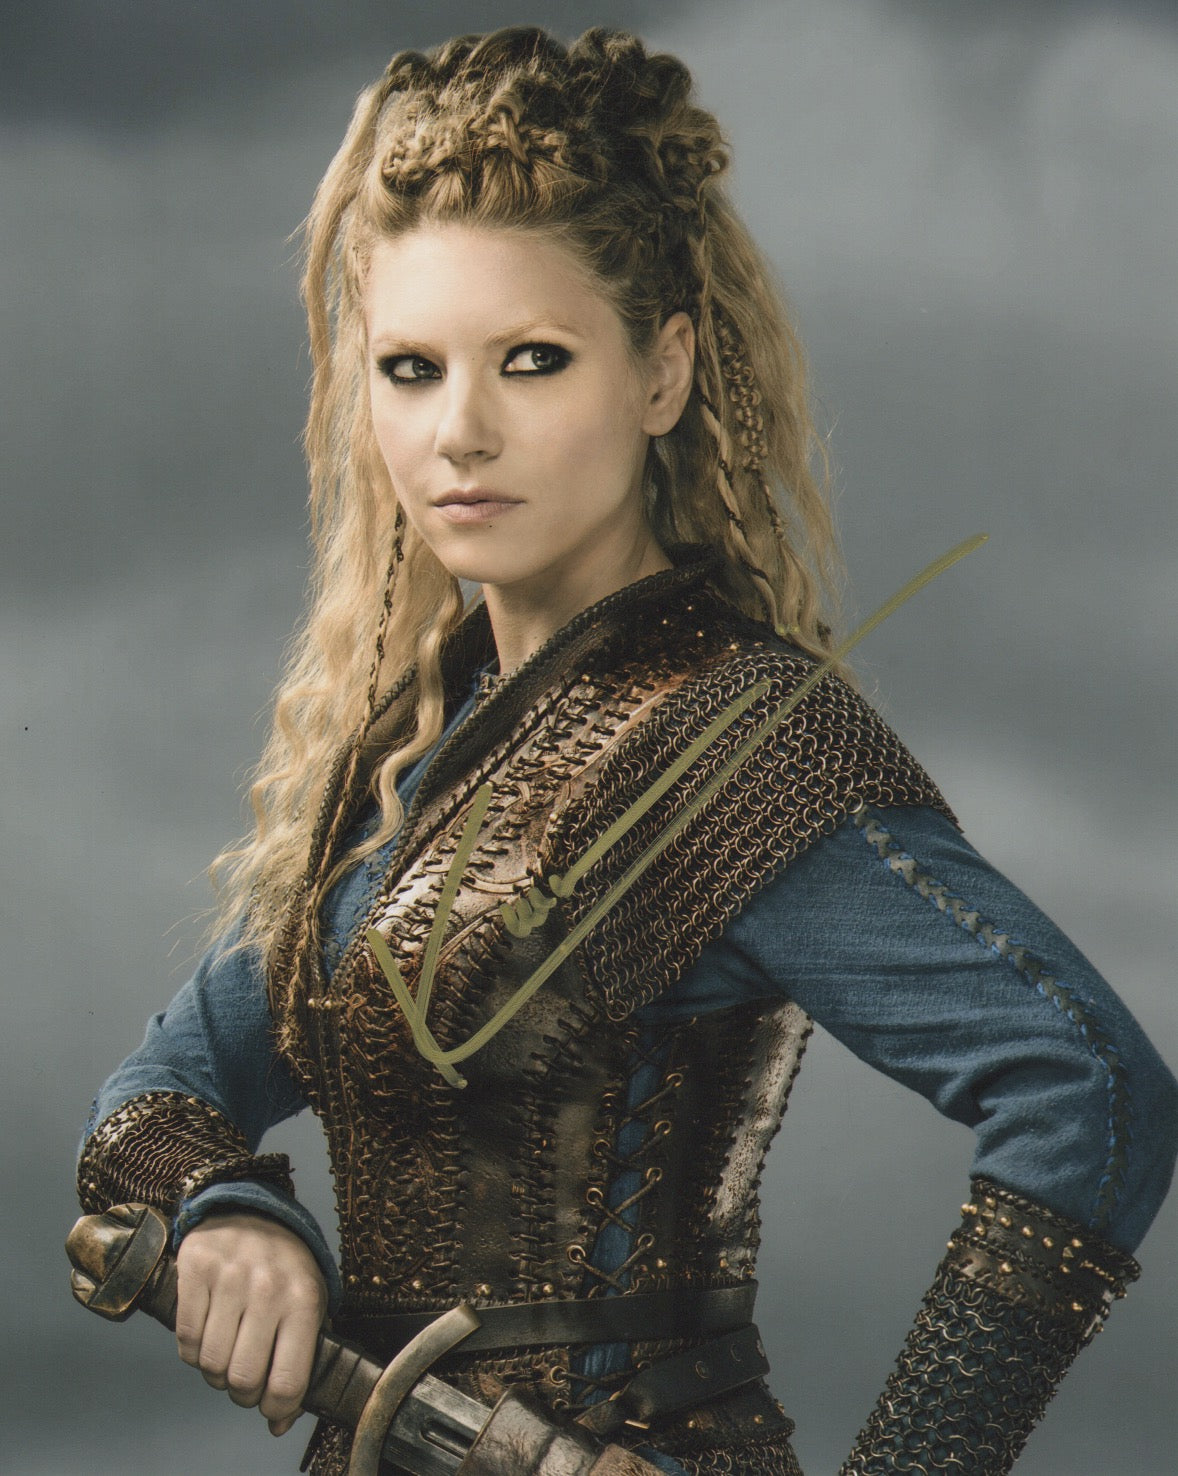 Katheryn Winnick Signed Autograph 8x10 Photo - Outlaw Hobbies Authentic Autographs